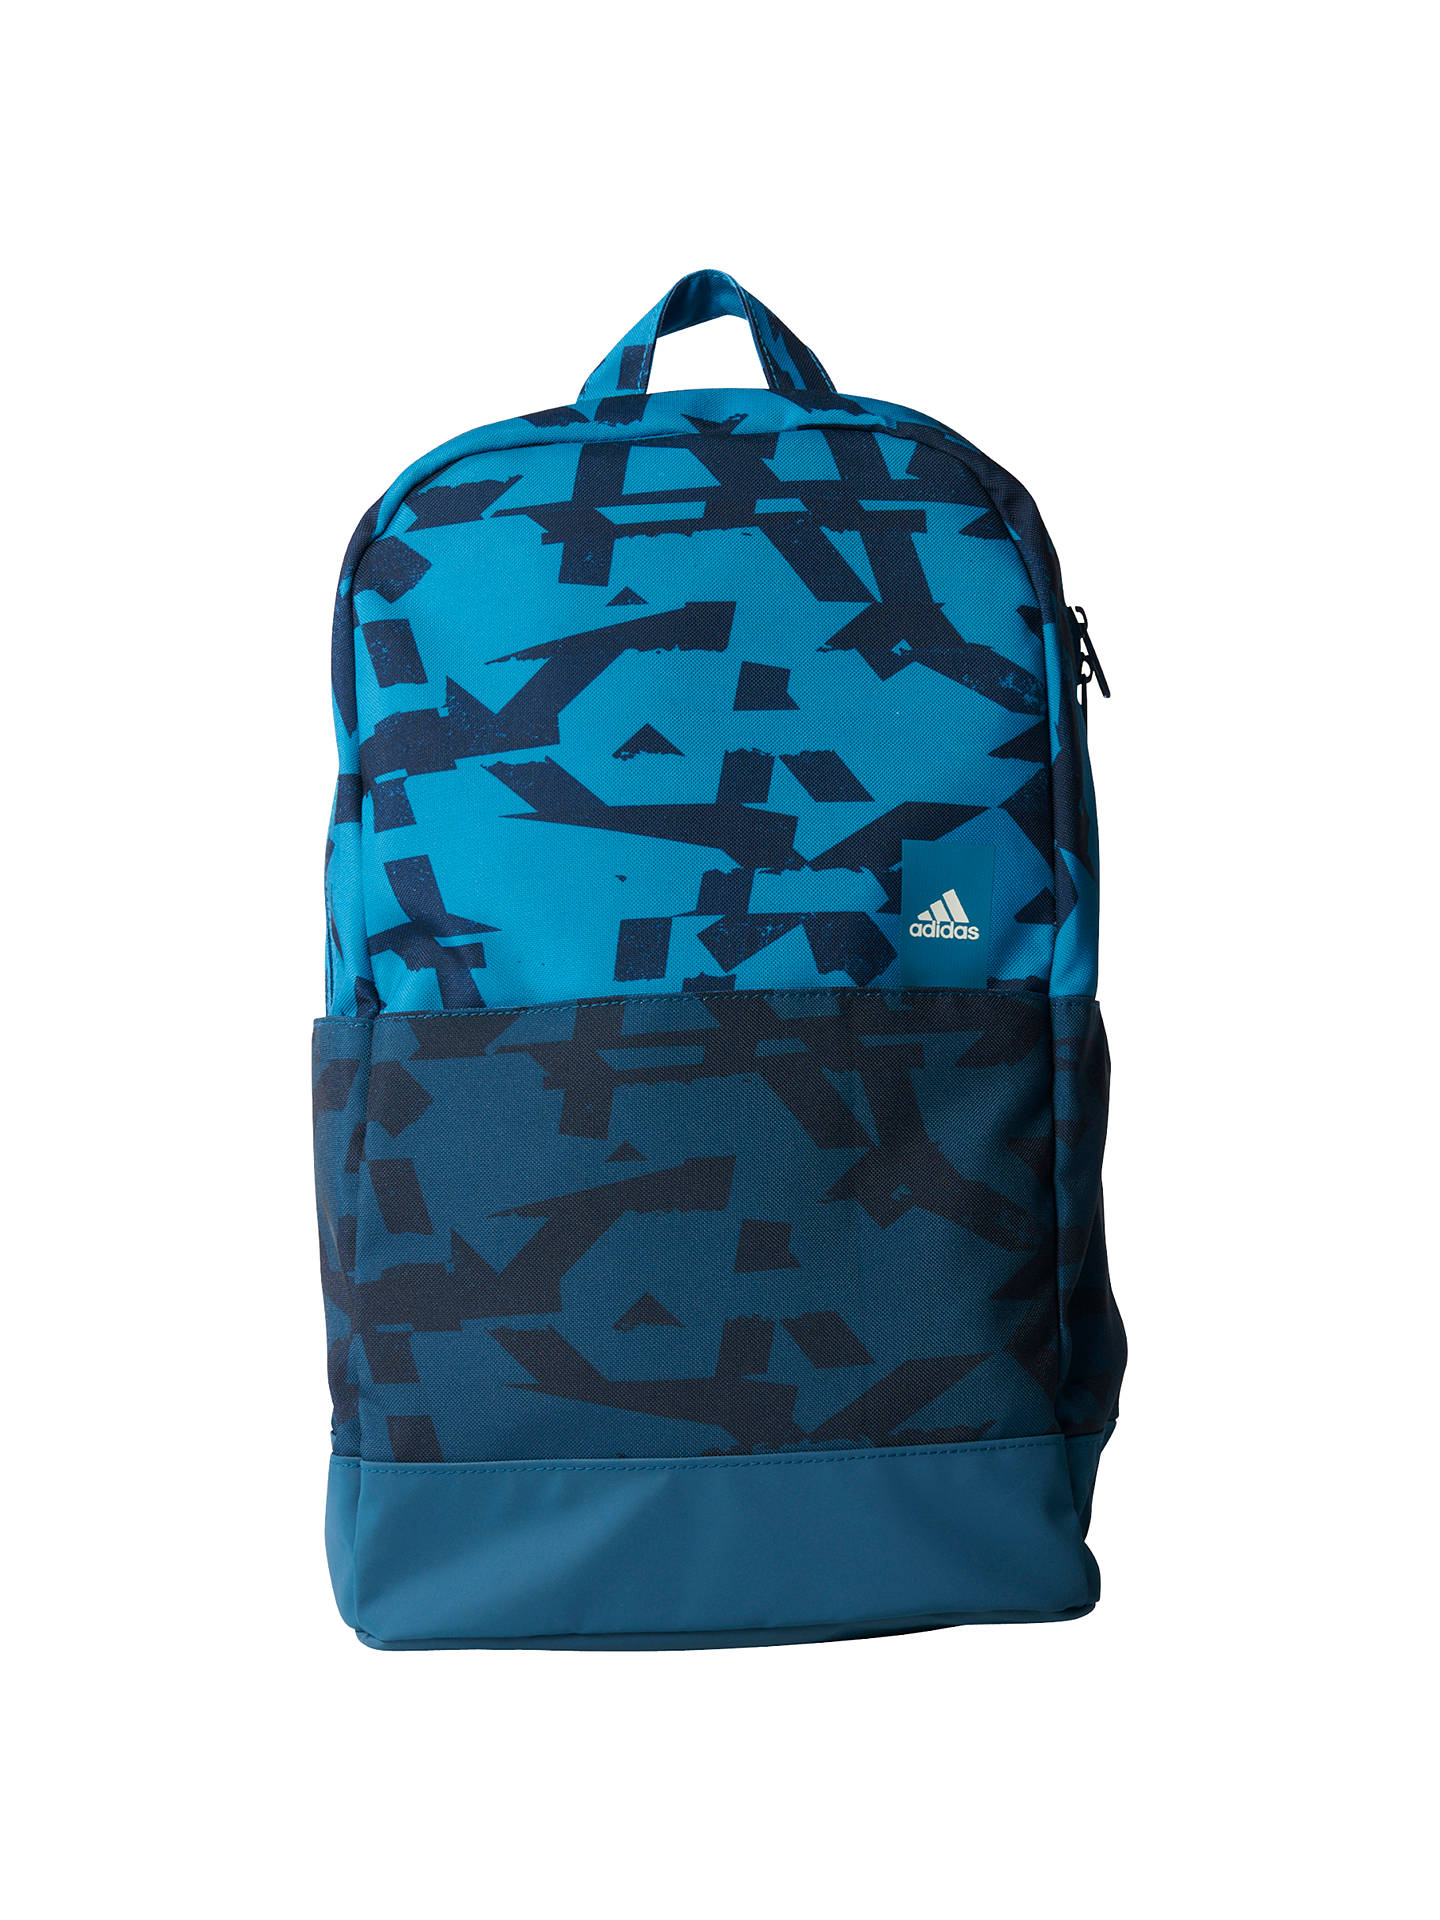 Buyadidas Classic Graphic Backpack 8eb29fa1d9cd8